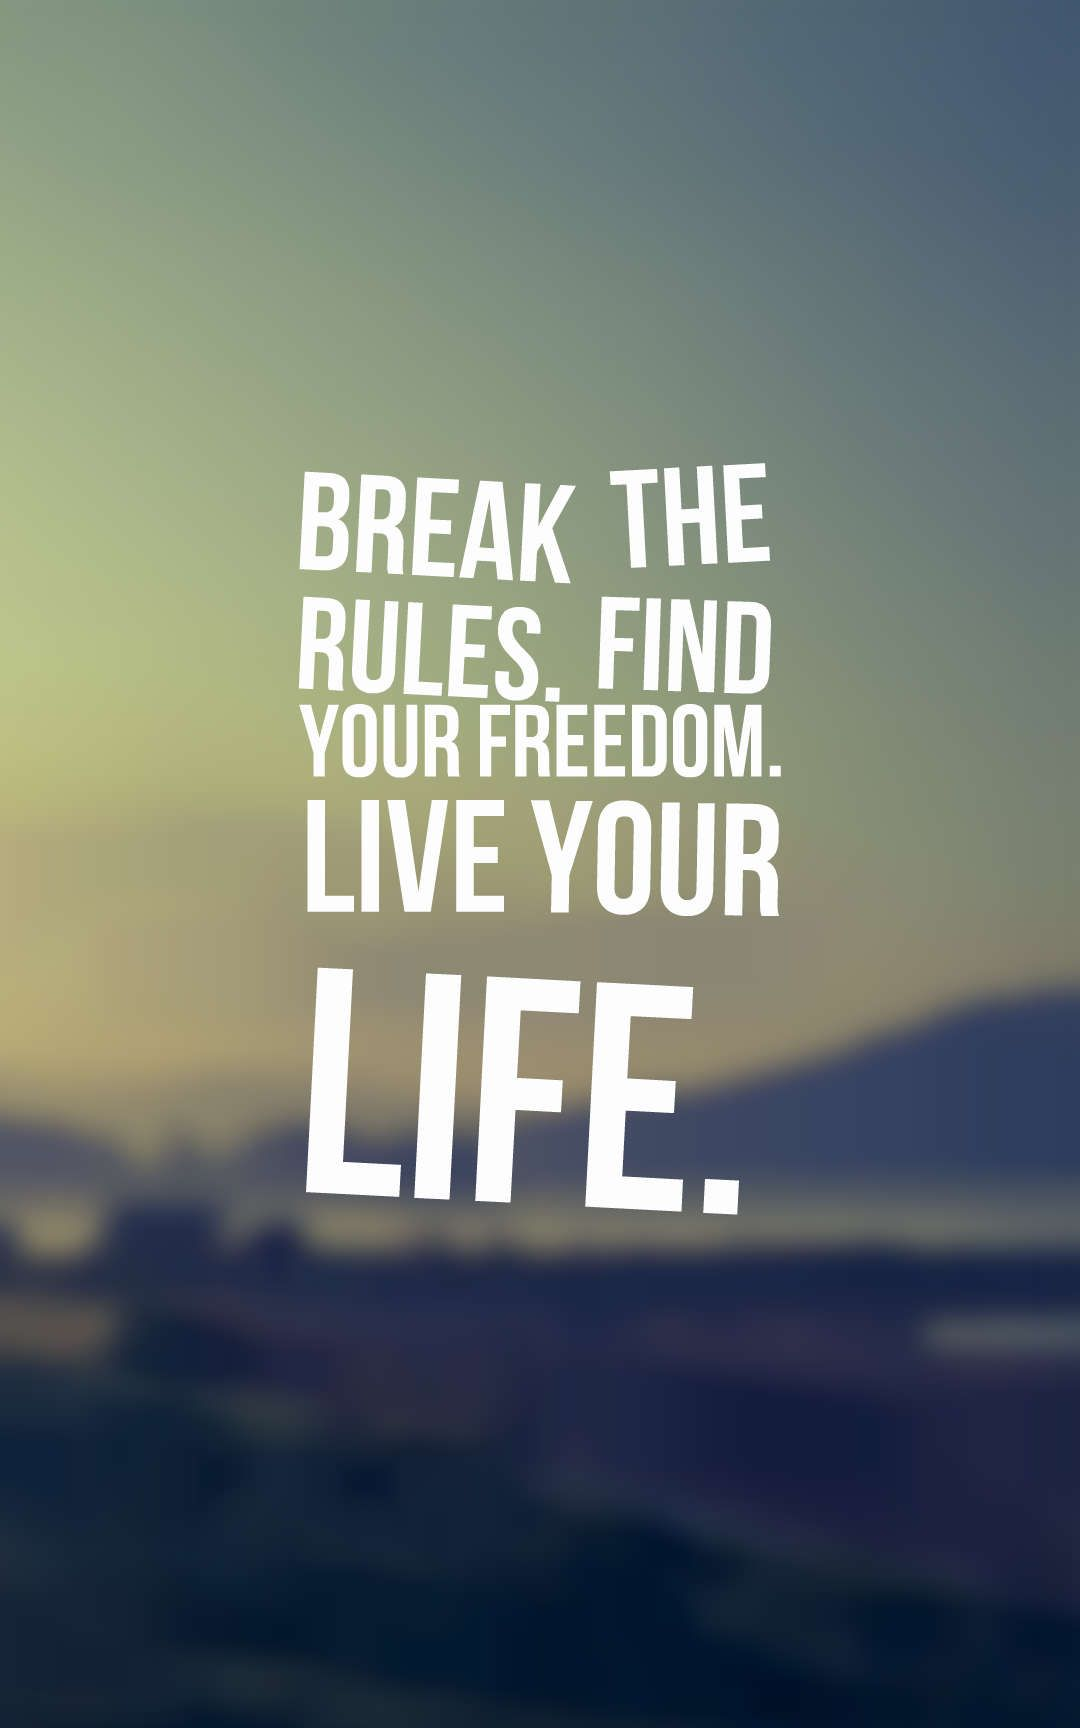 Freedom Quotes Break the rules. Find your freedom. Live your life. | Wellness  Freedom Quotes